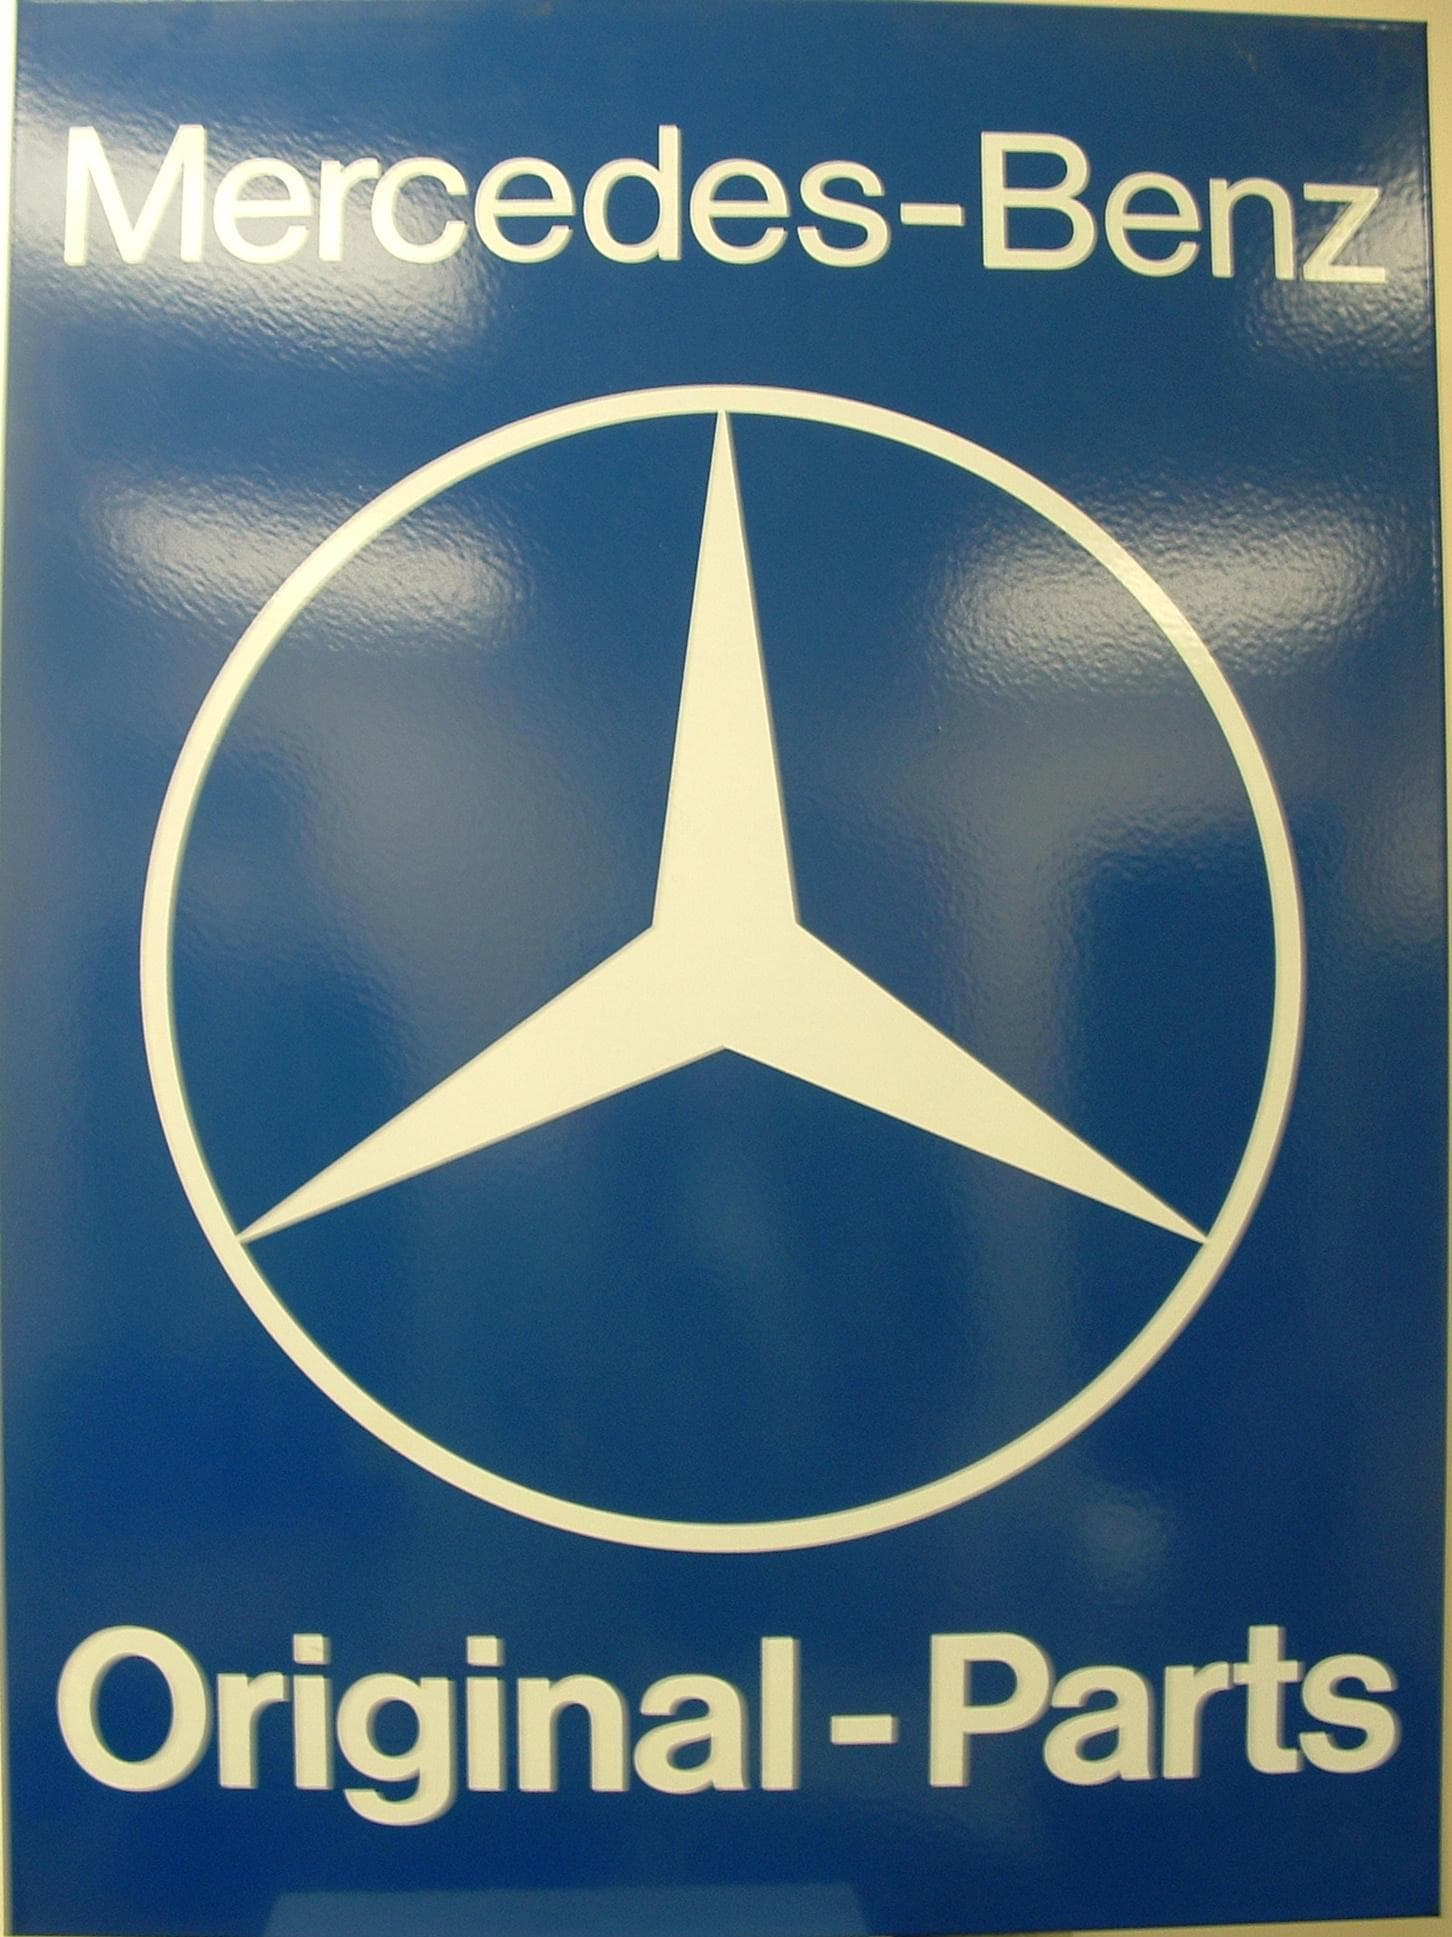 Mercedes benz parts and accessories for sale near for Mercedes benz of syracuse fayetteville ny